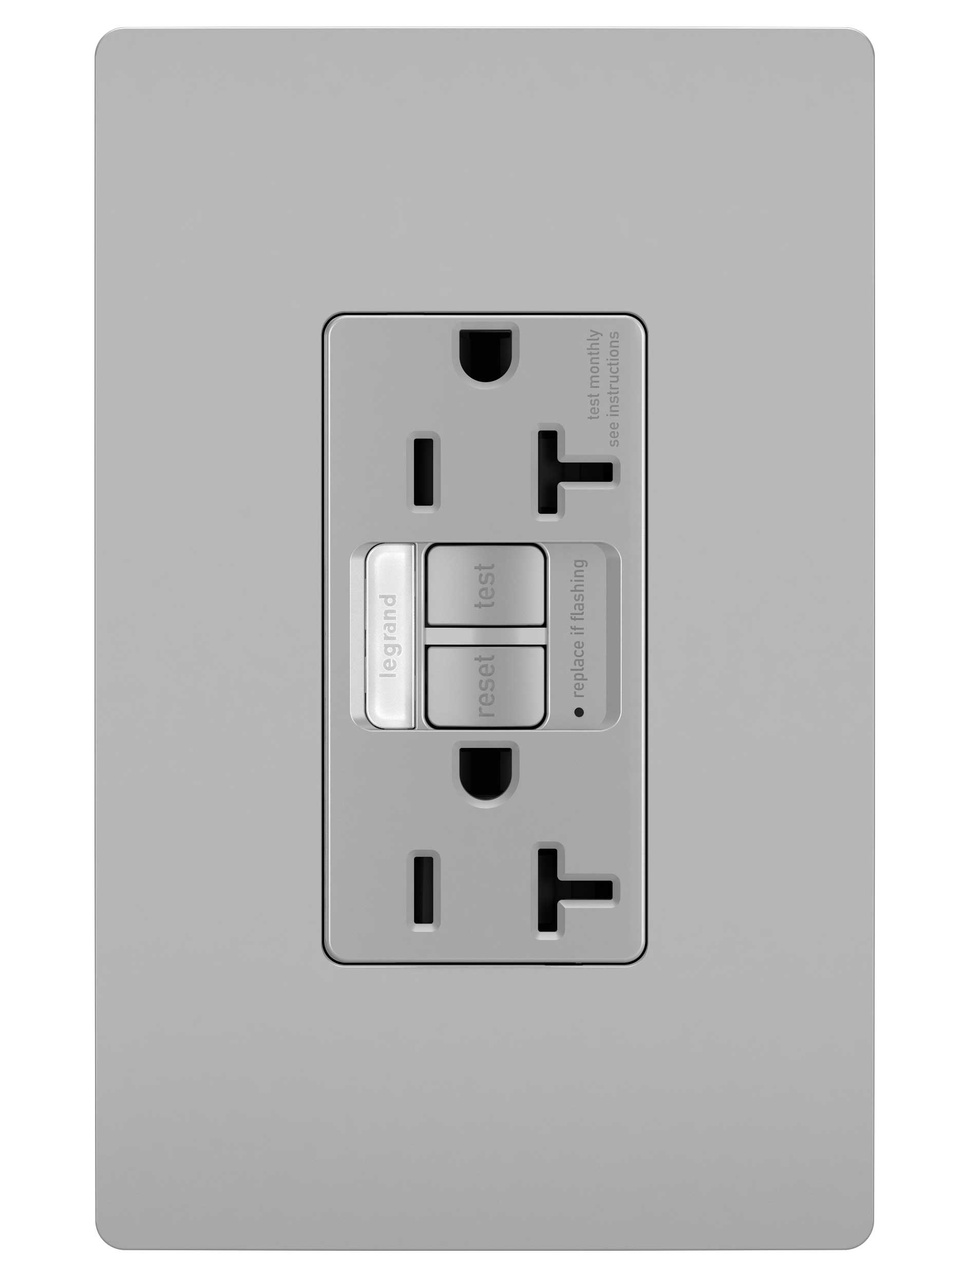 Wiring Gfci Light Electrical Diagrams To Switch Diagram For Gfi Schematic Night Outlet Block And U2022 With